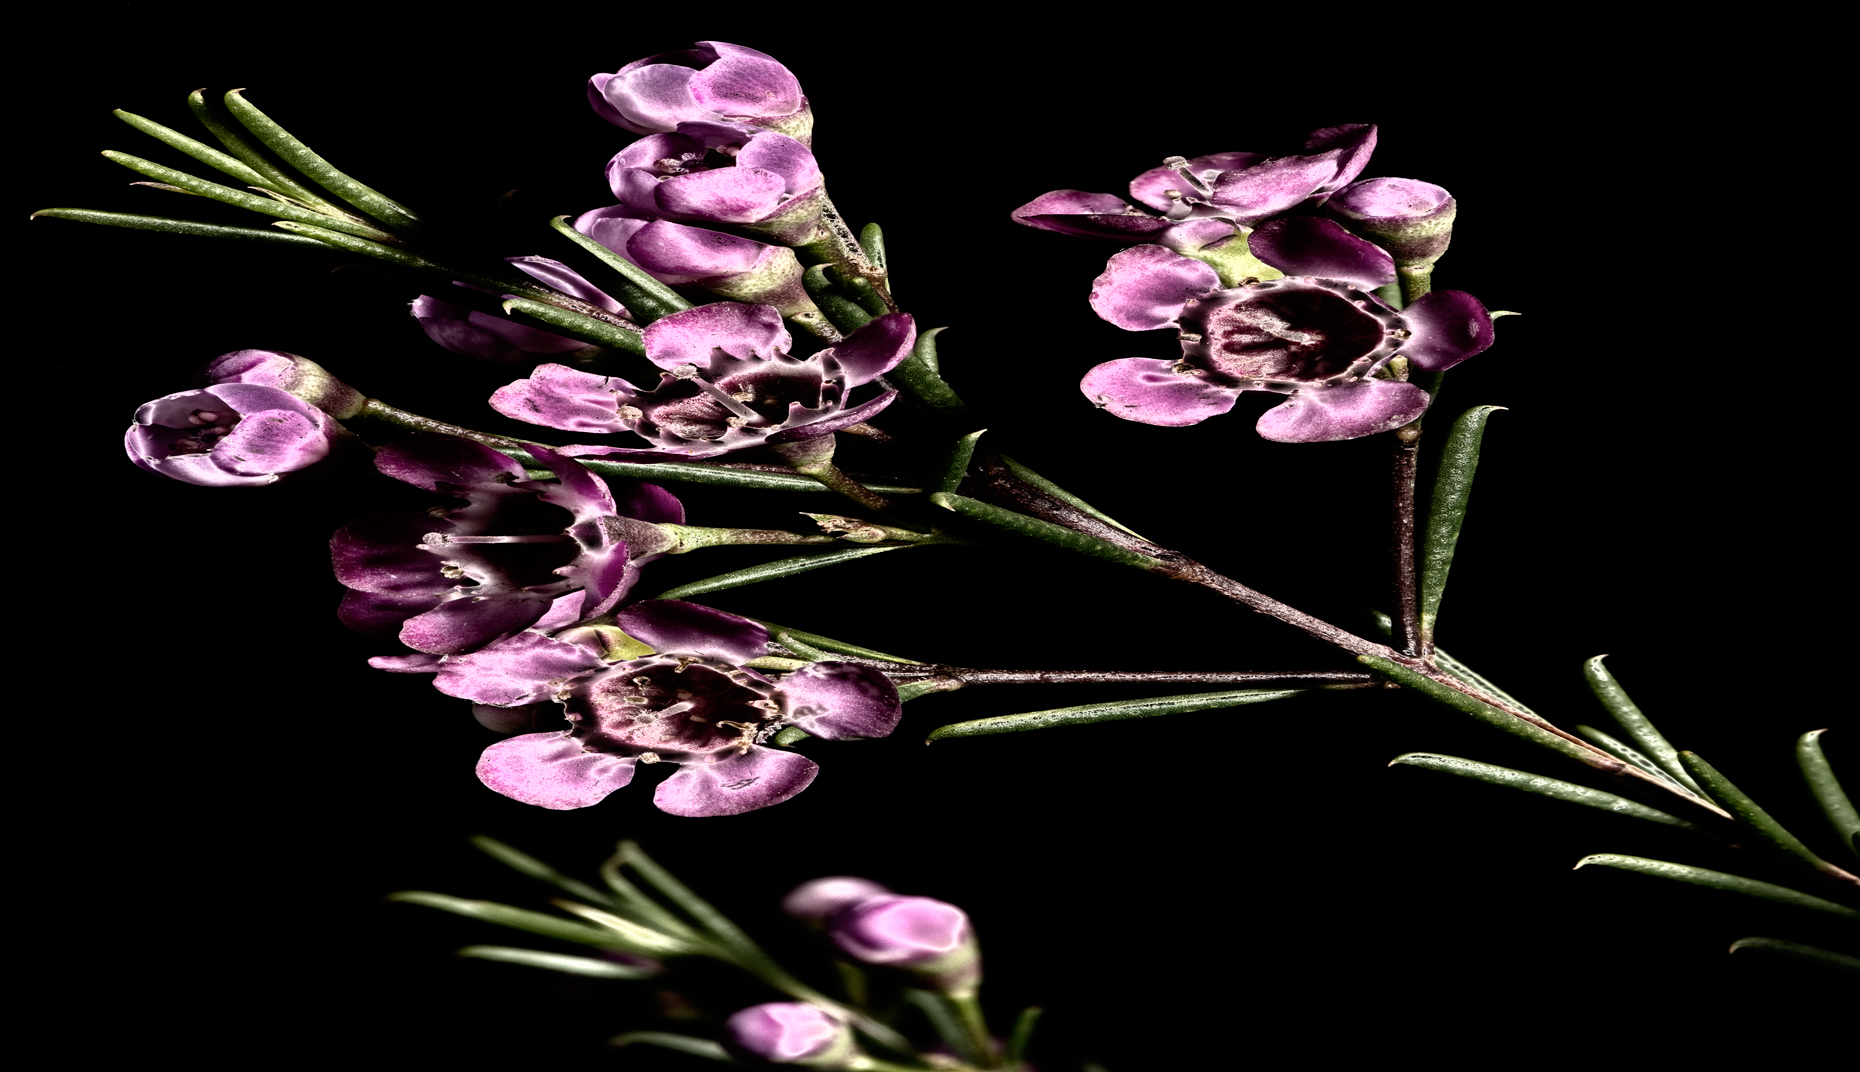 waxflower solarized web view 1